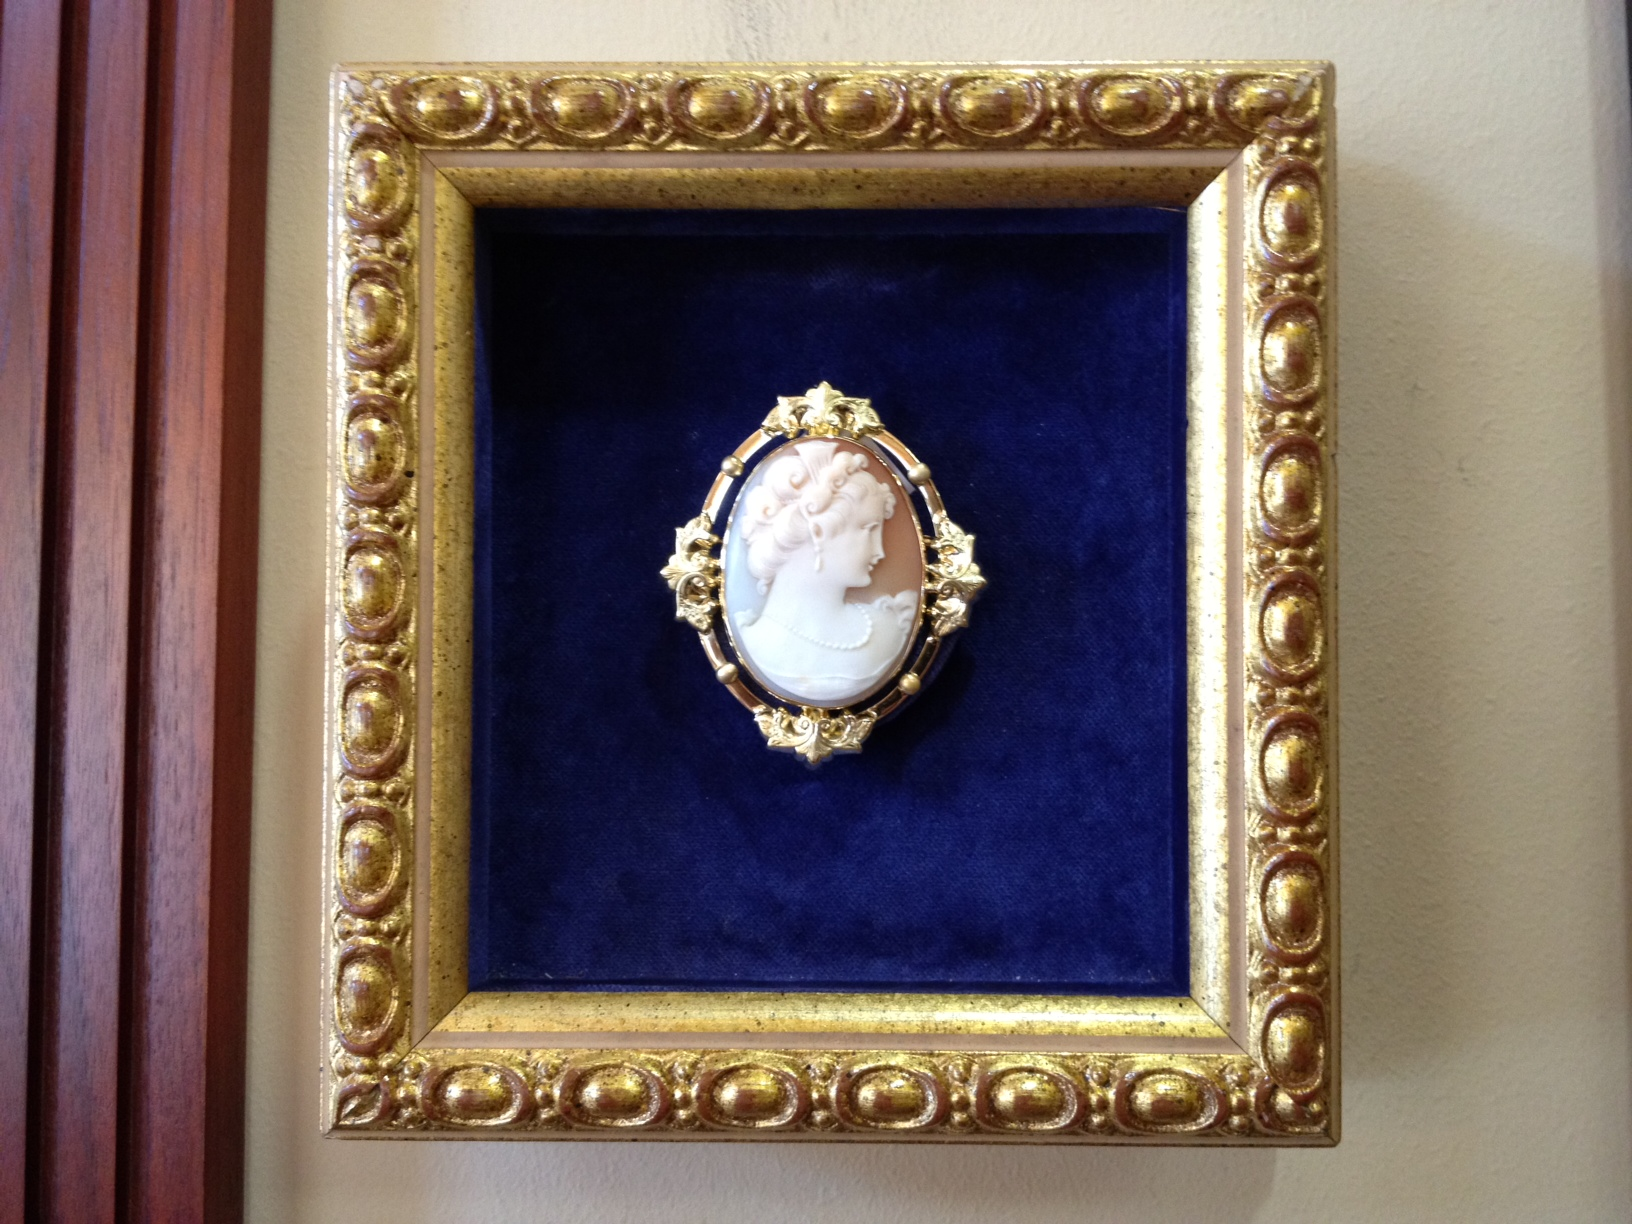 refurbish-page-cameo-6